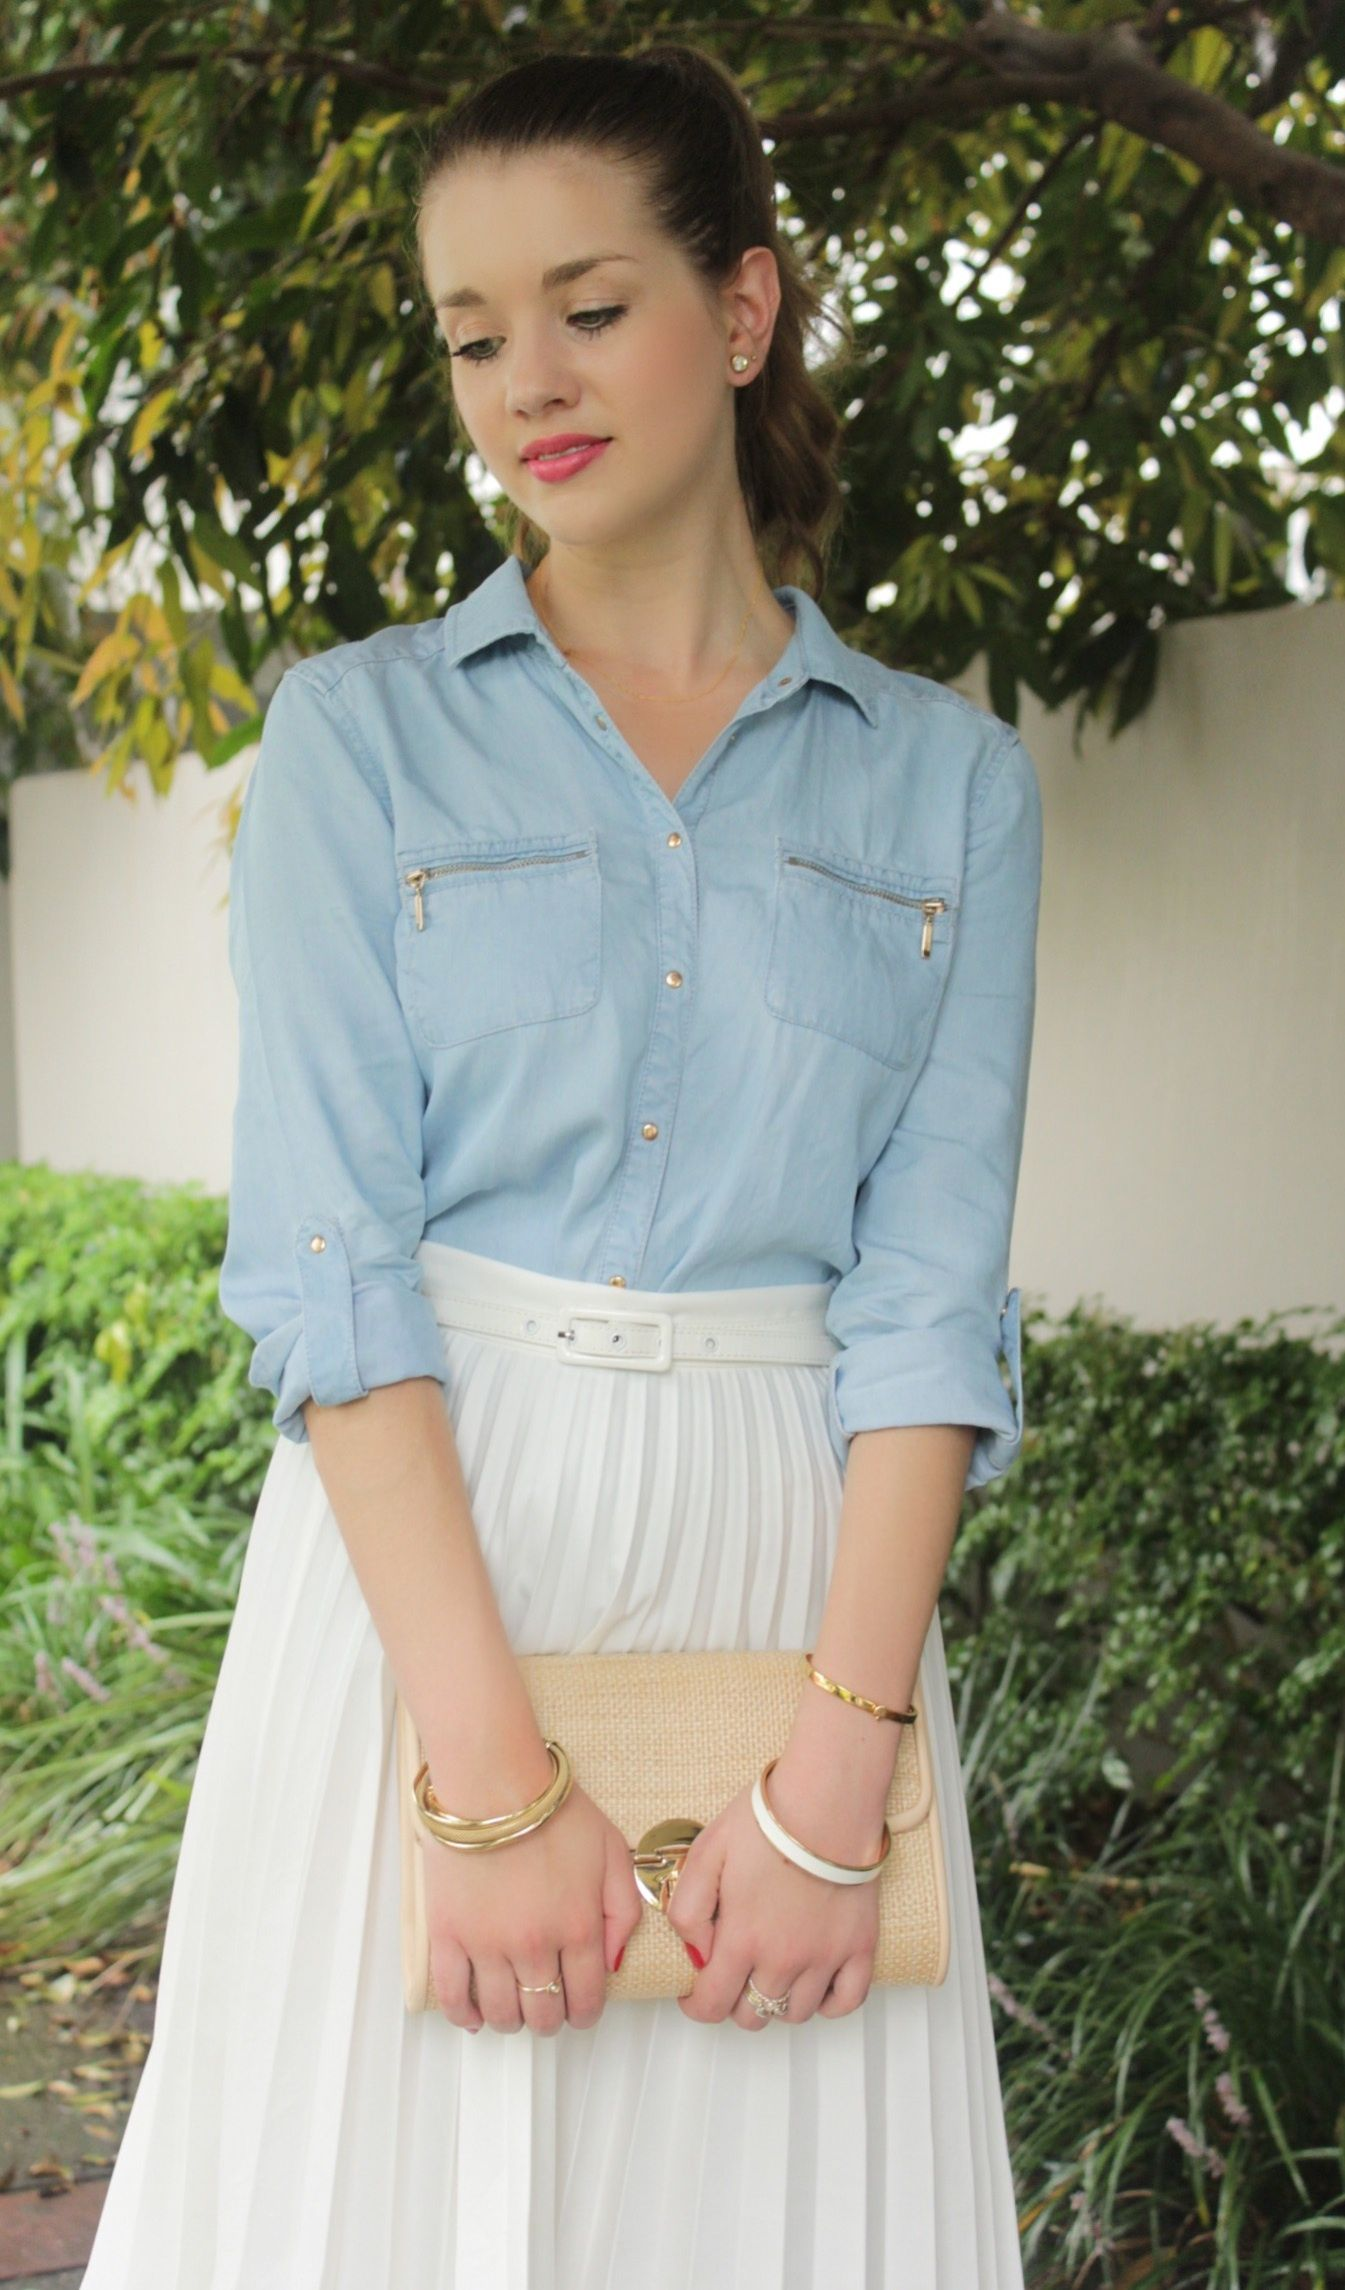 """""""Dressing Accordion-ly for the Cinema"""" now up on theprofessionalcinderella.com"""